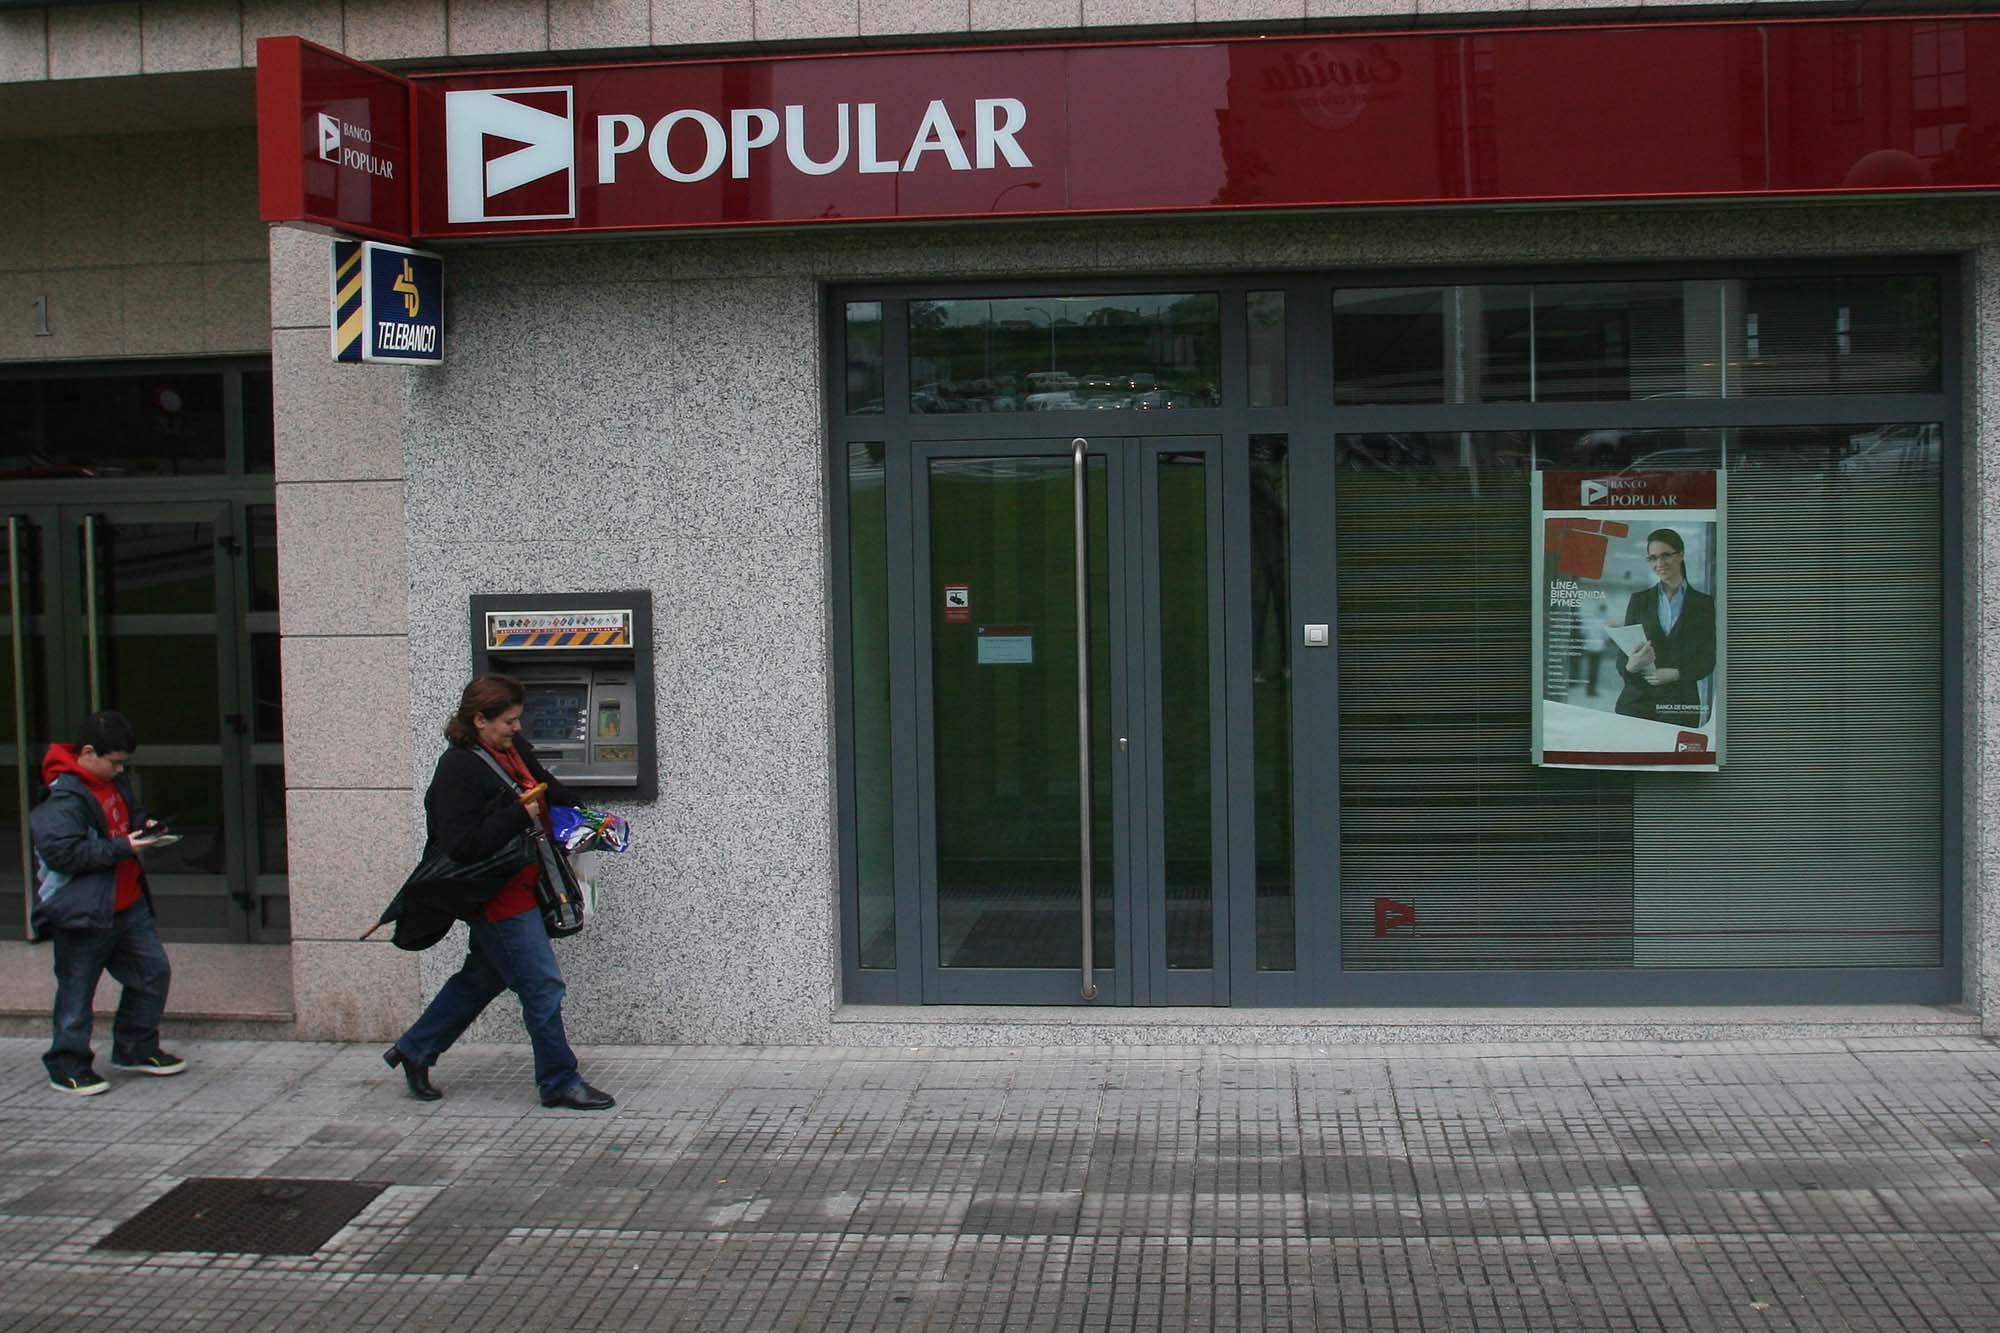 Tiene futuro la red de oficinas bancarias actual for Banco popular e oficinas